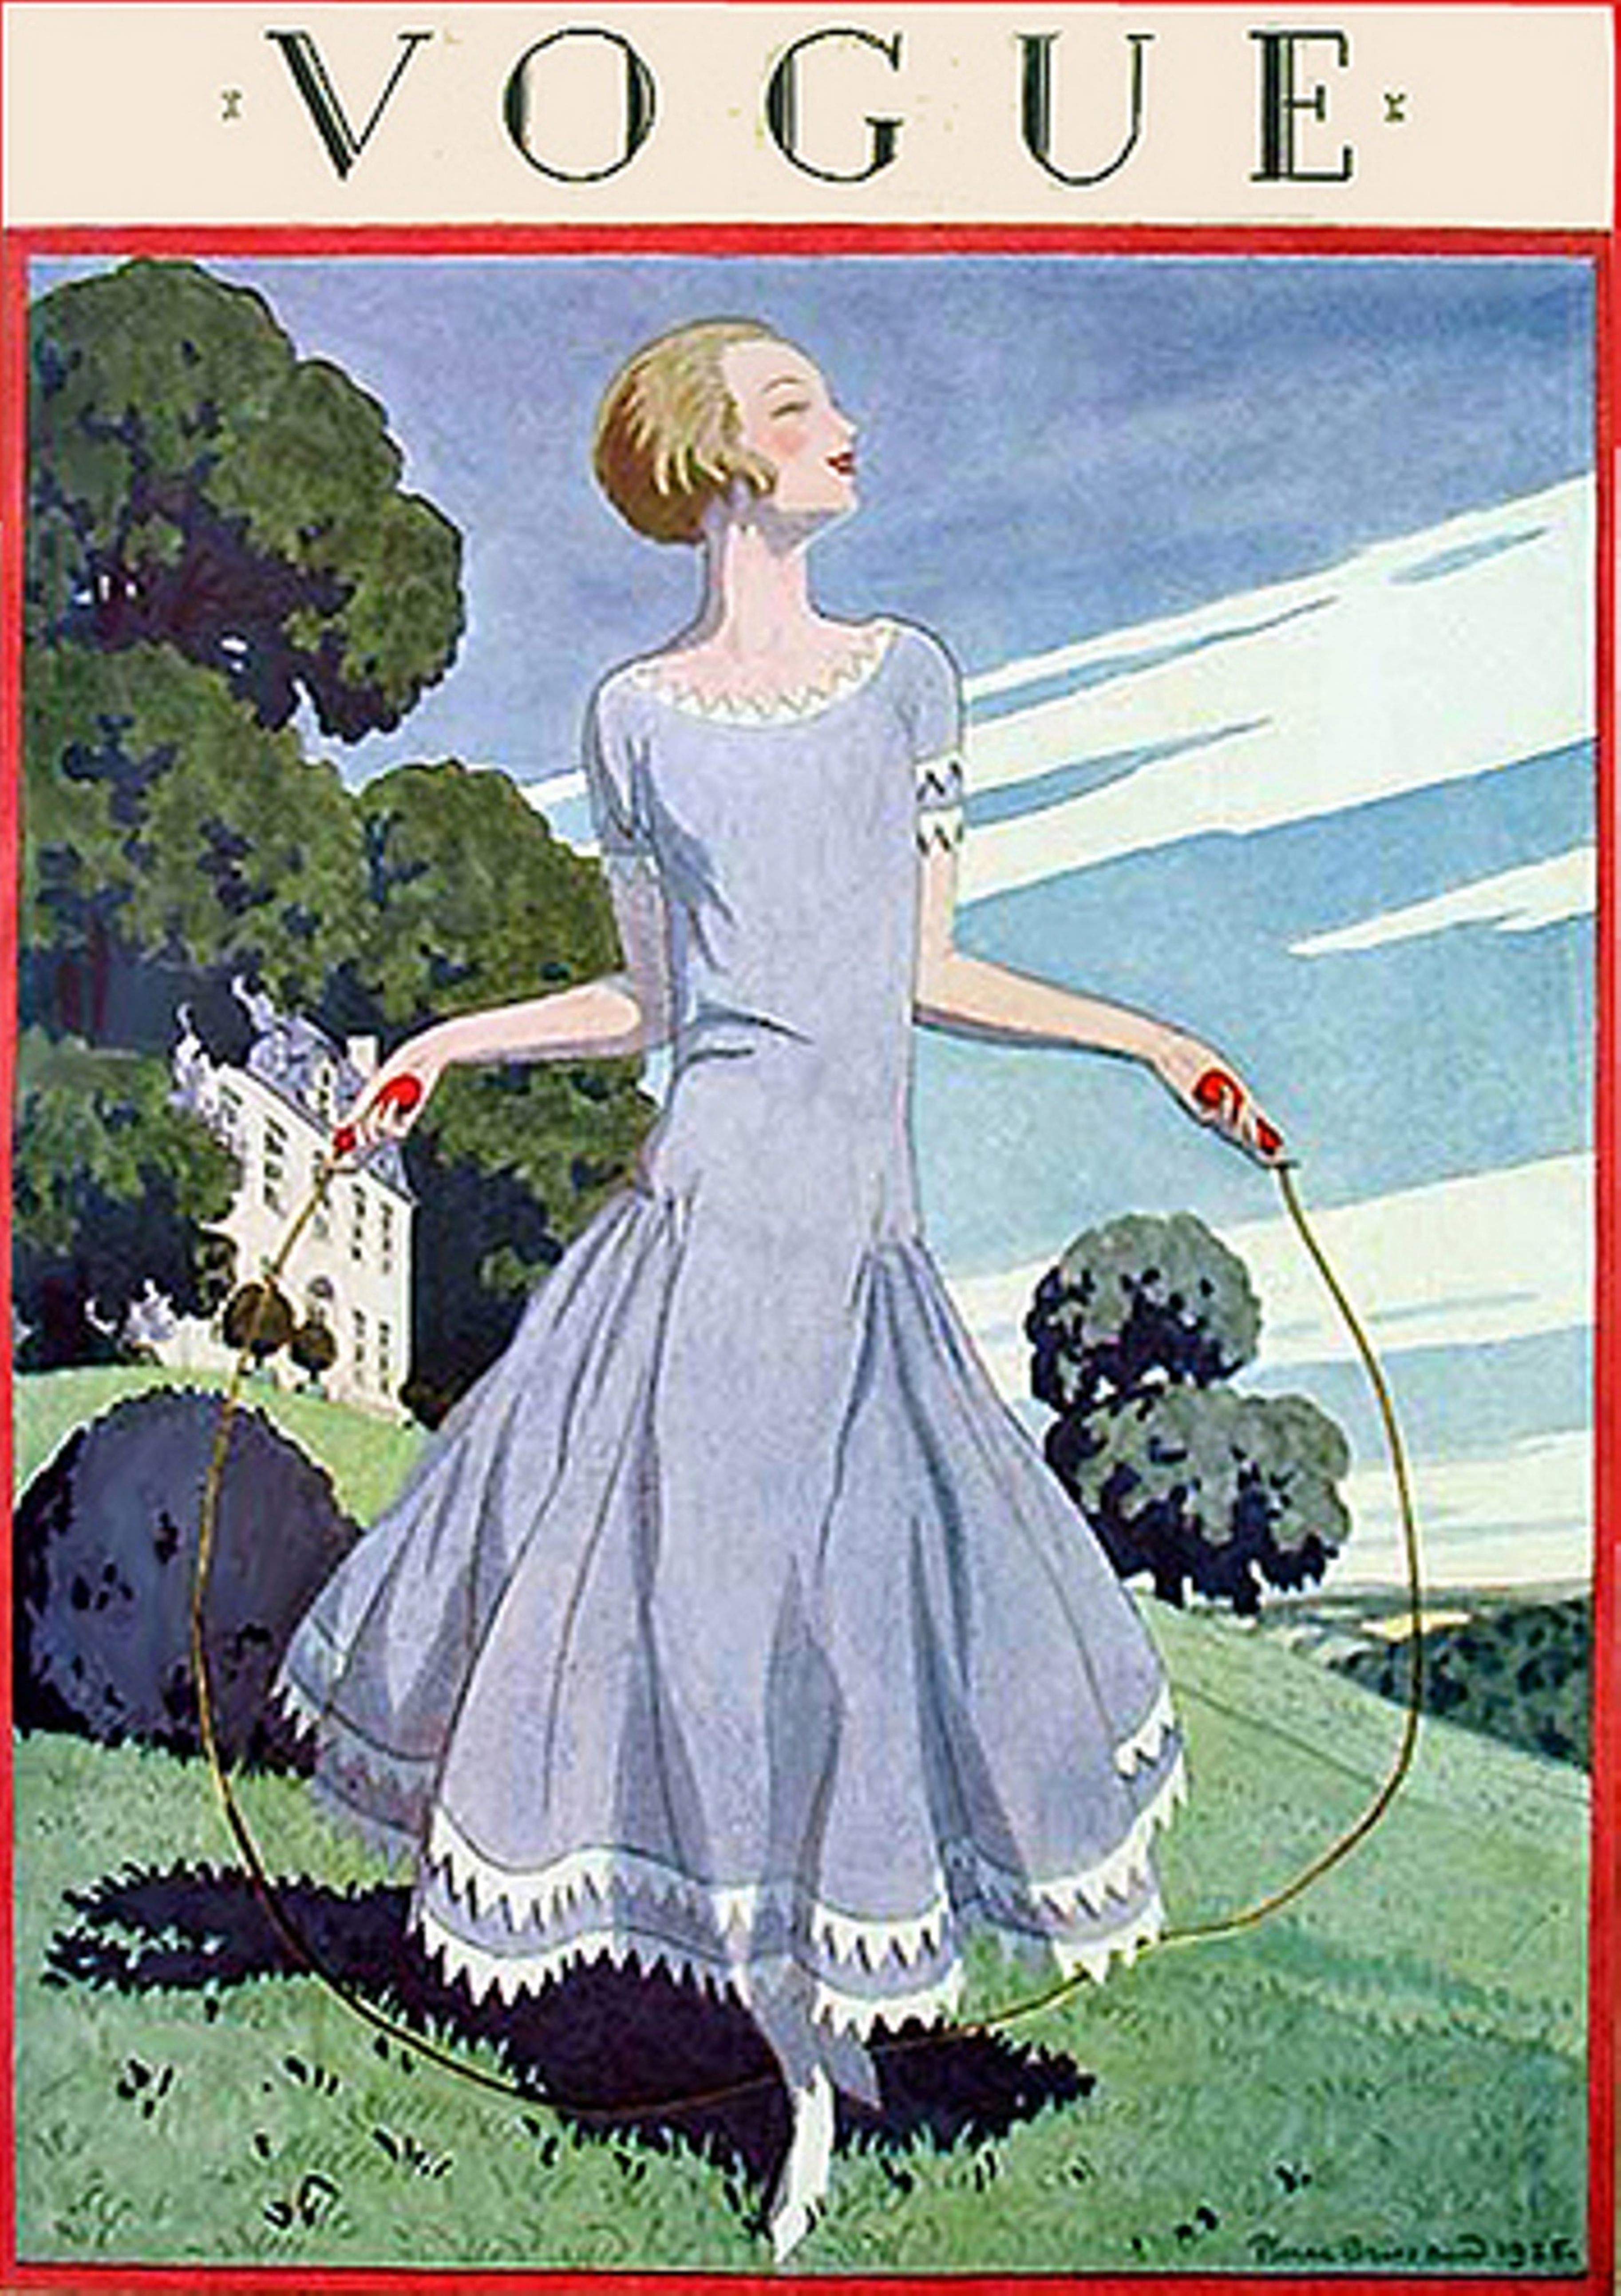 Vogue Covers 1910s Vogue Covers 1920s | w...